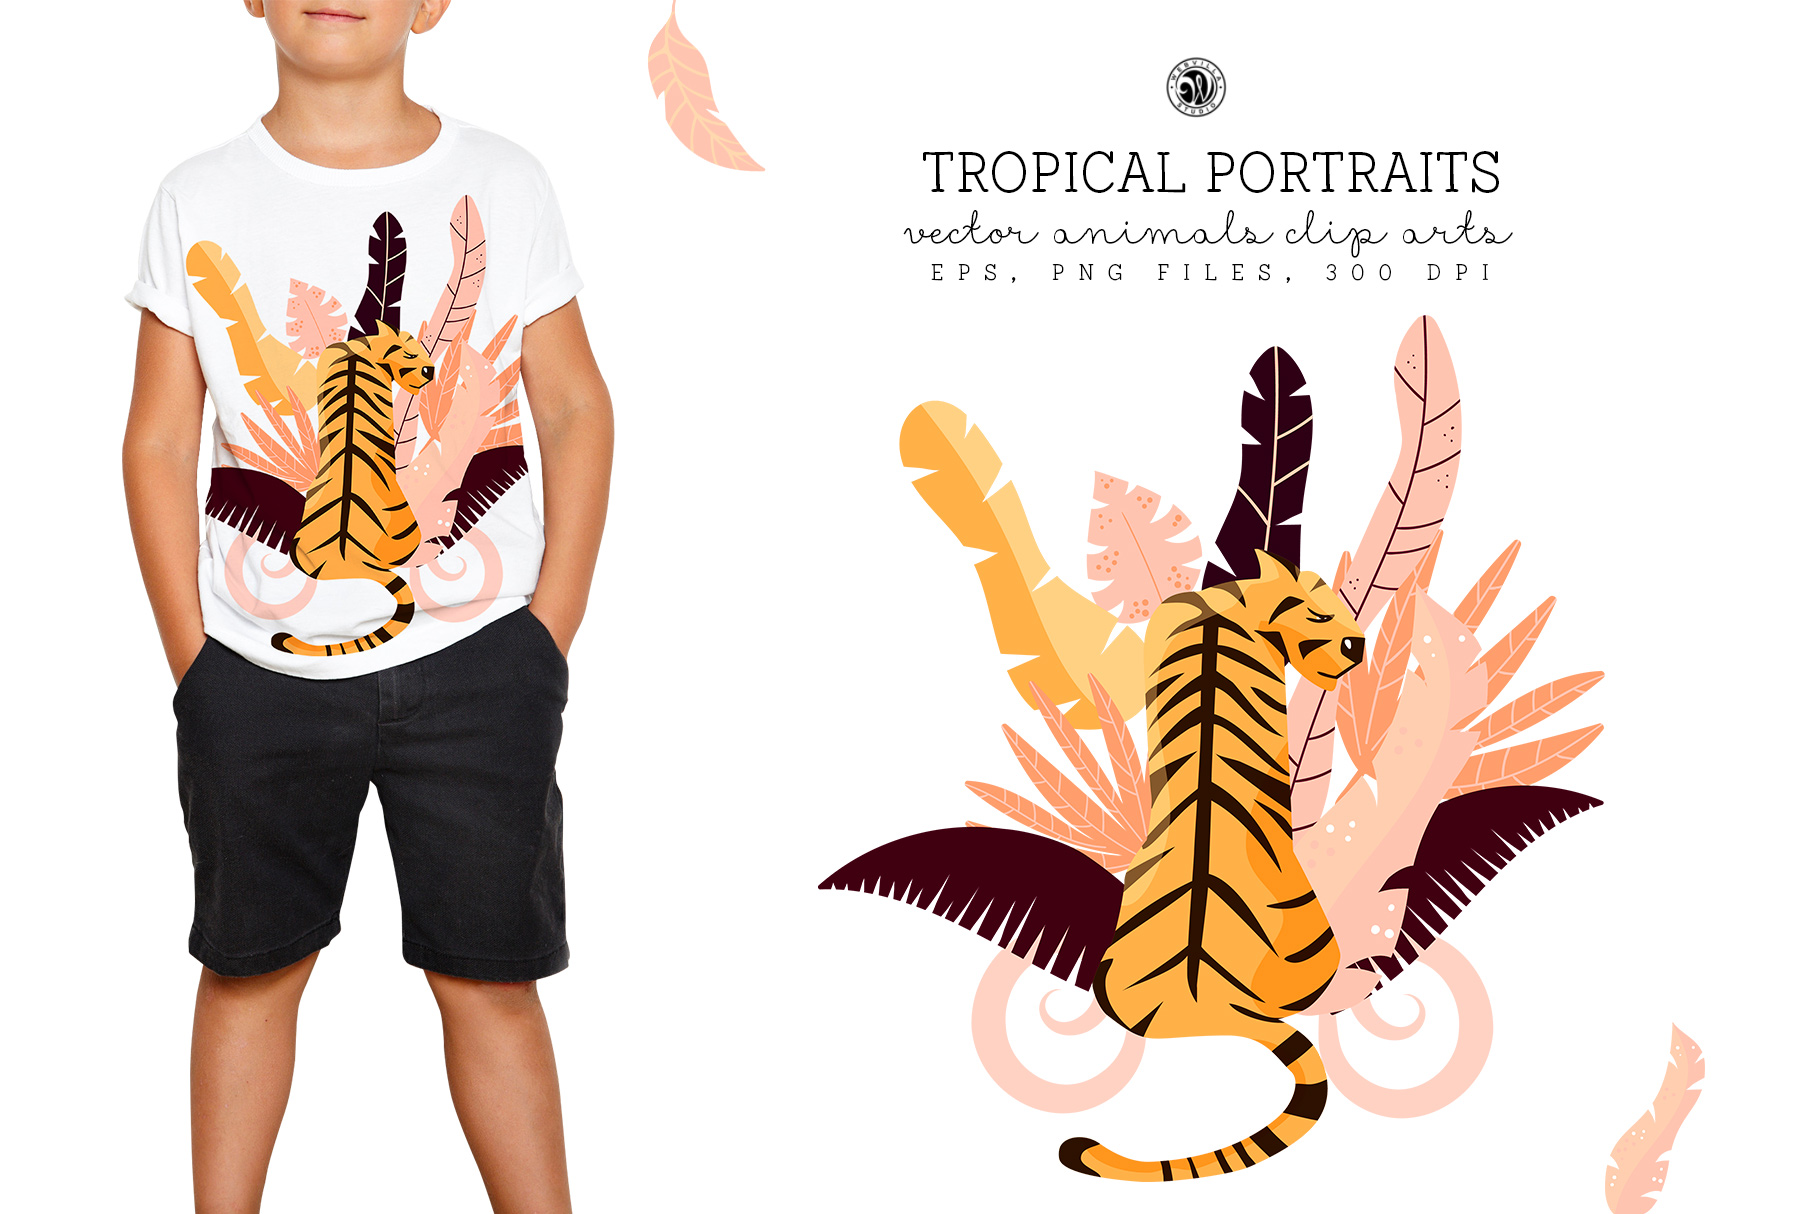 Tropical Portraits - Price $14